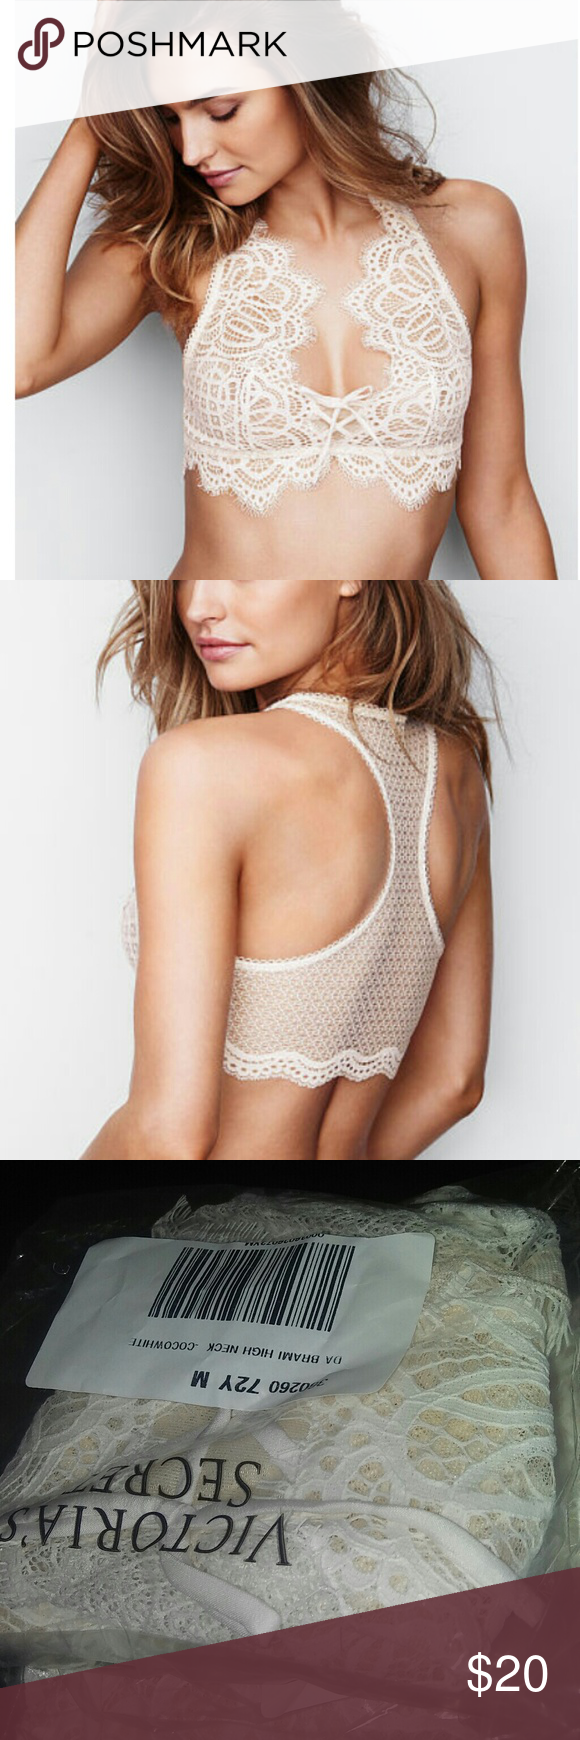 db23e595e1416 Multiple sizes available. Color is coconut white. Bundle and save. Victoria s  Secret Intimates   Sleepwear Bras